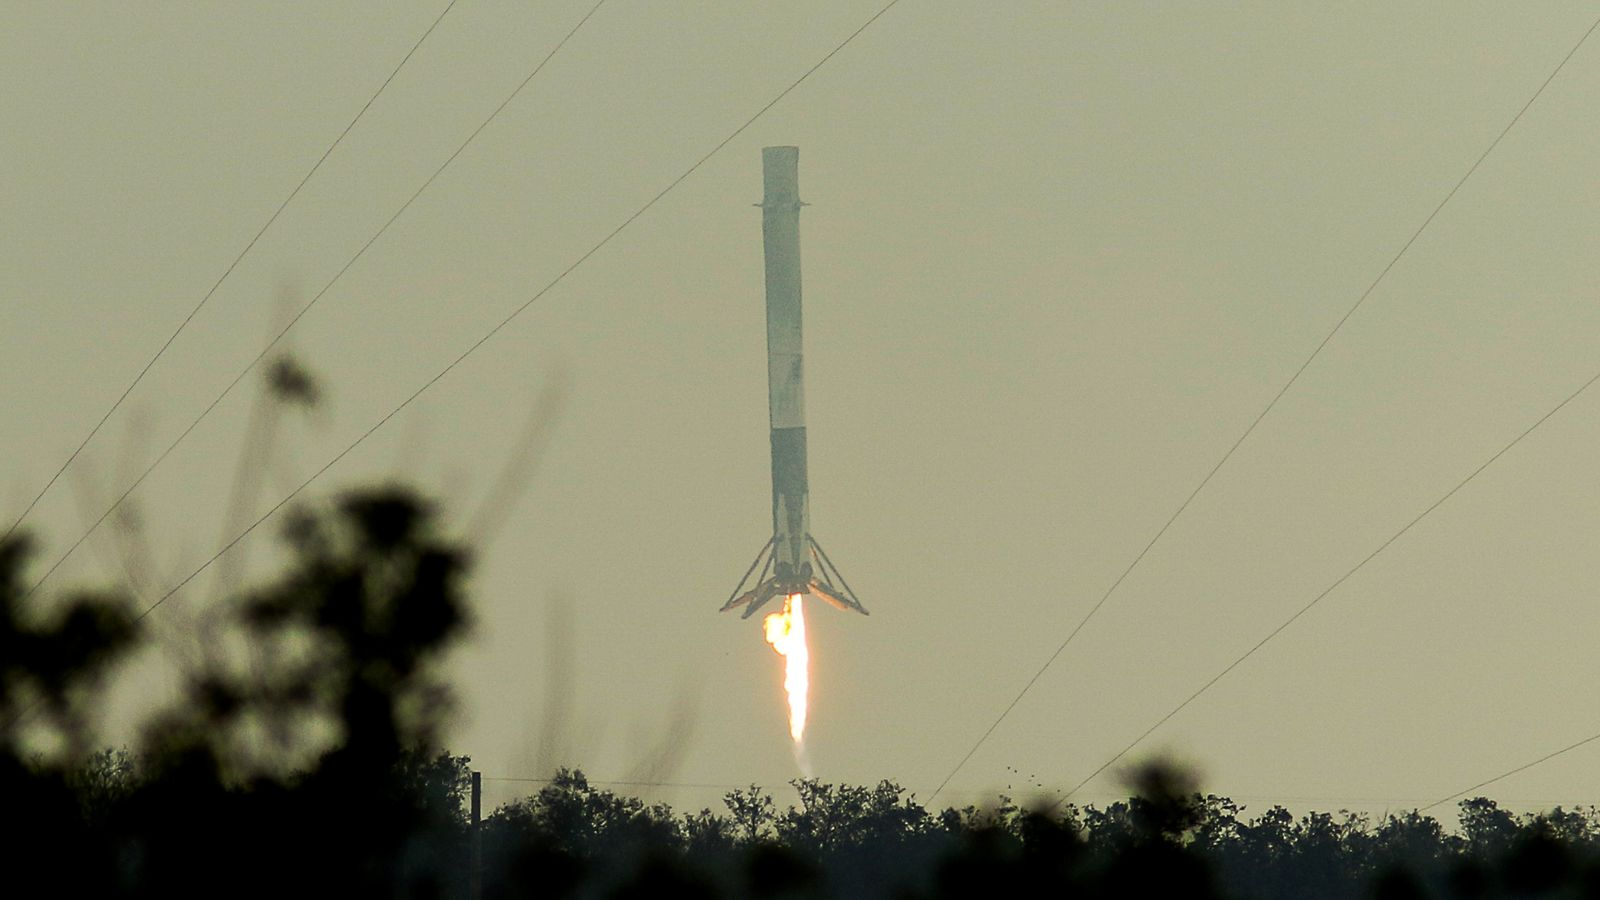 Moonshot launchpad used as SpaceX blasts off